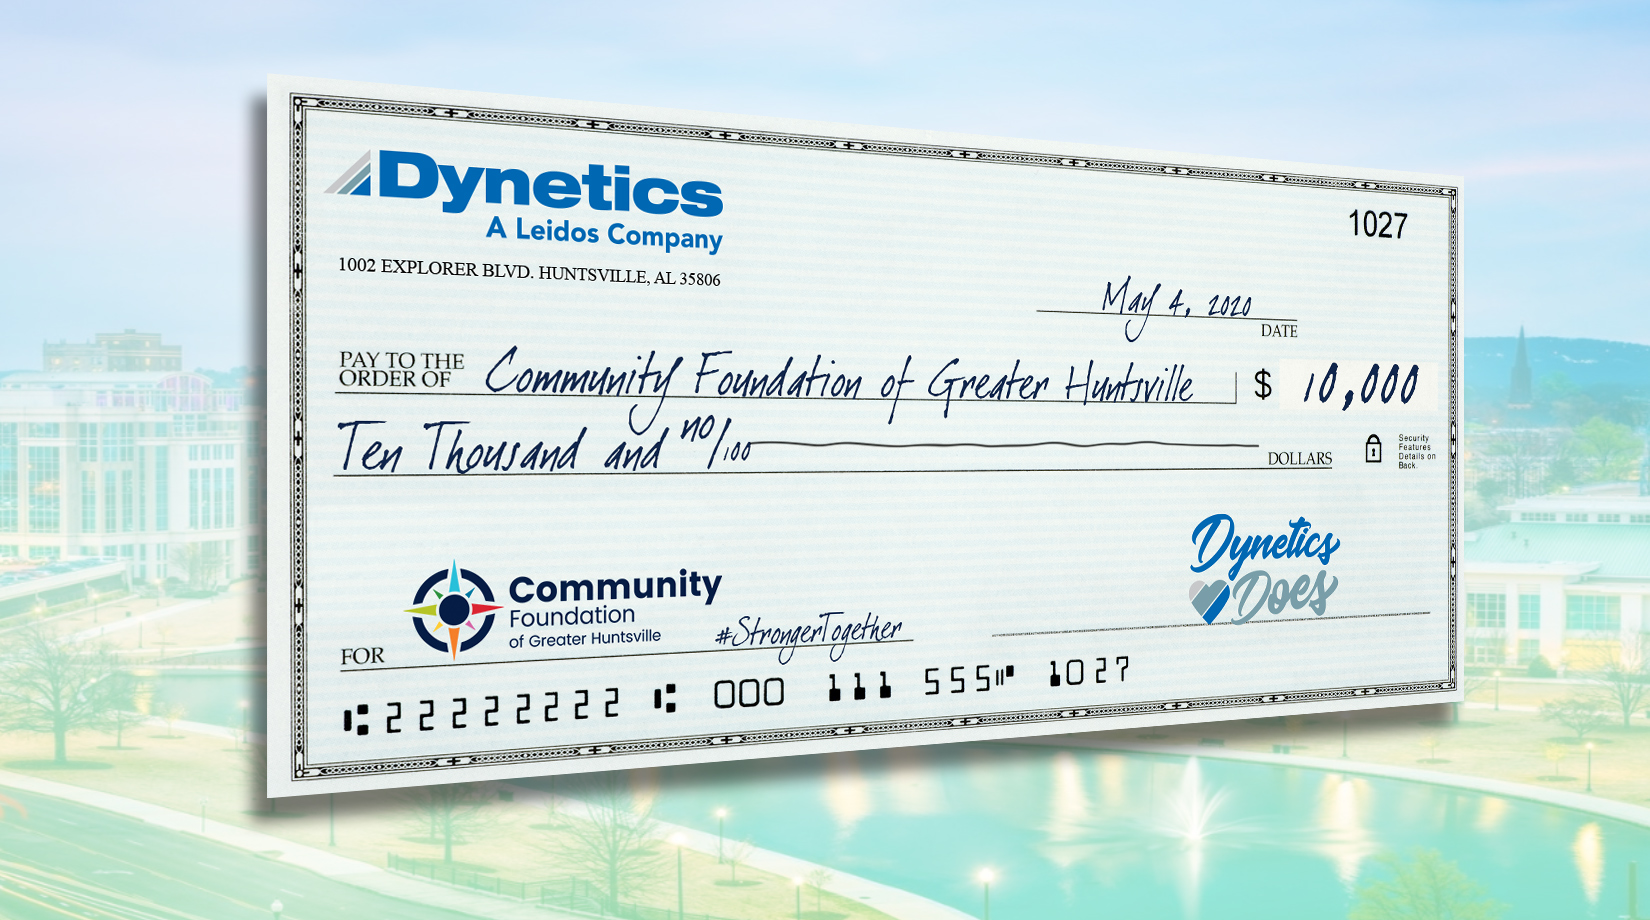 Dynetics Donates to the Community Foundation of Greater Huntsville thumbnail image